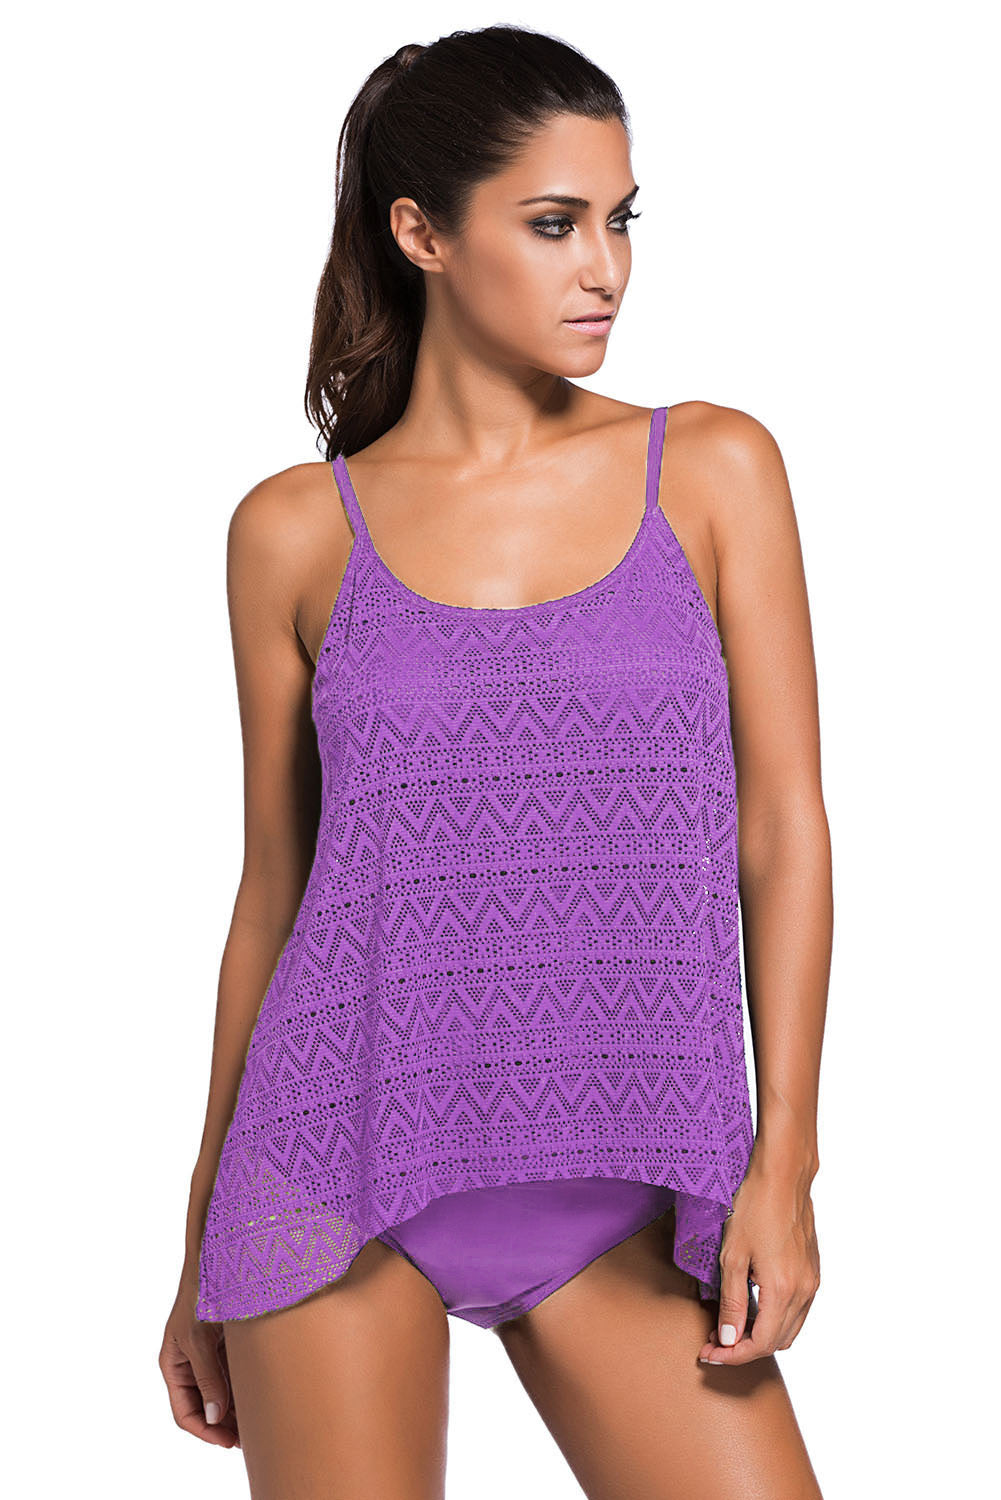 Purple Lace Overlay Spaghetti Straps Tankini Swimsuit Tankinis Discount Designer Fashion Clothes Shoes Bags Women Men Kids Children Black Owned Business